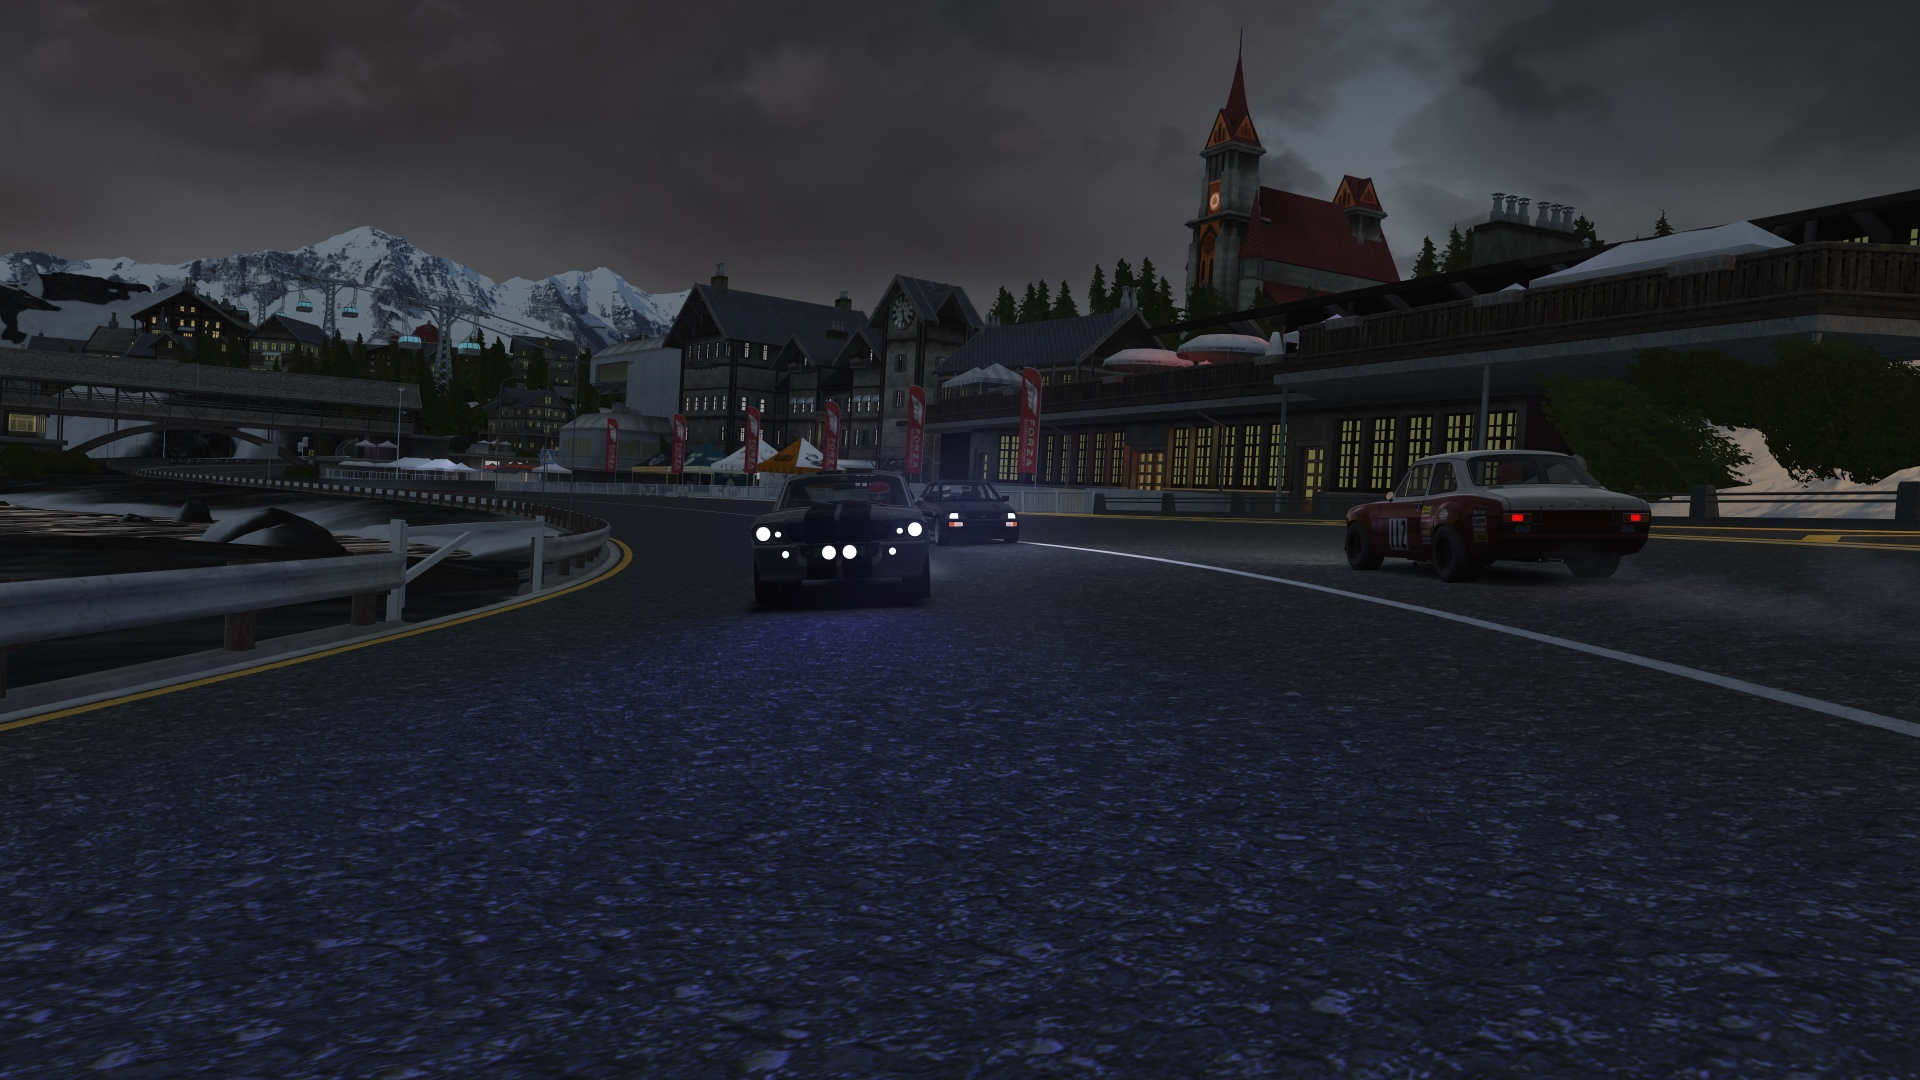 Screenshot_suzuki_liana_alps_20-10-119-10-1-17.jpg